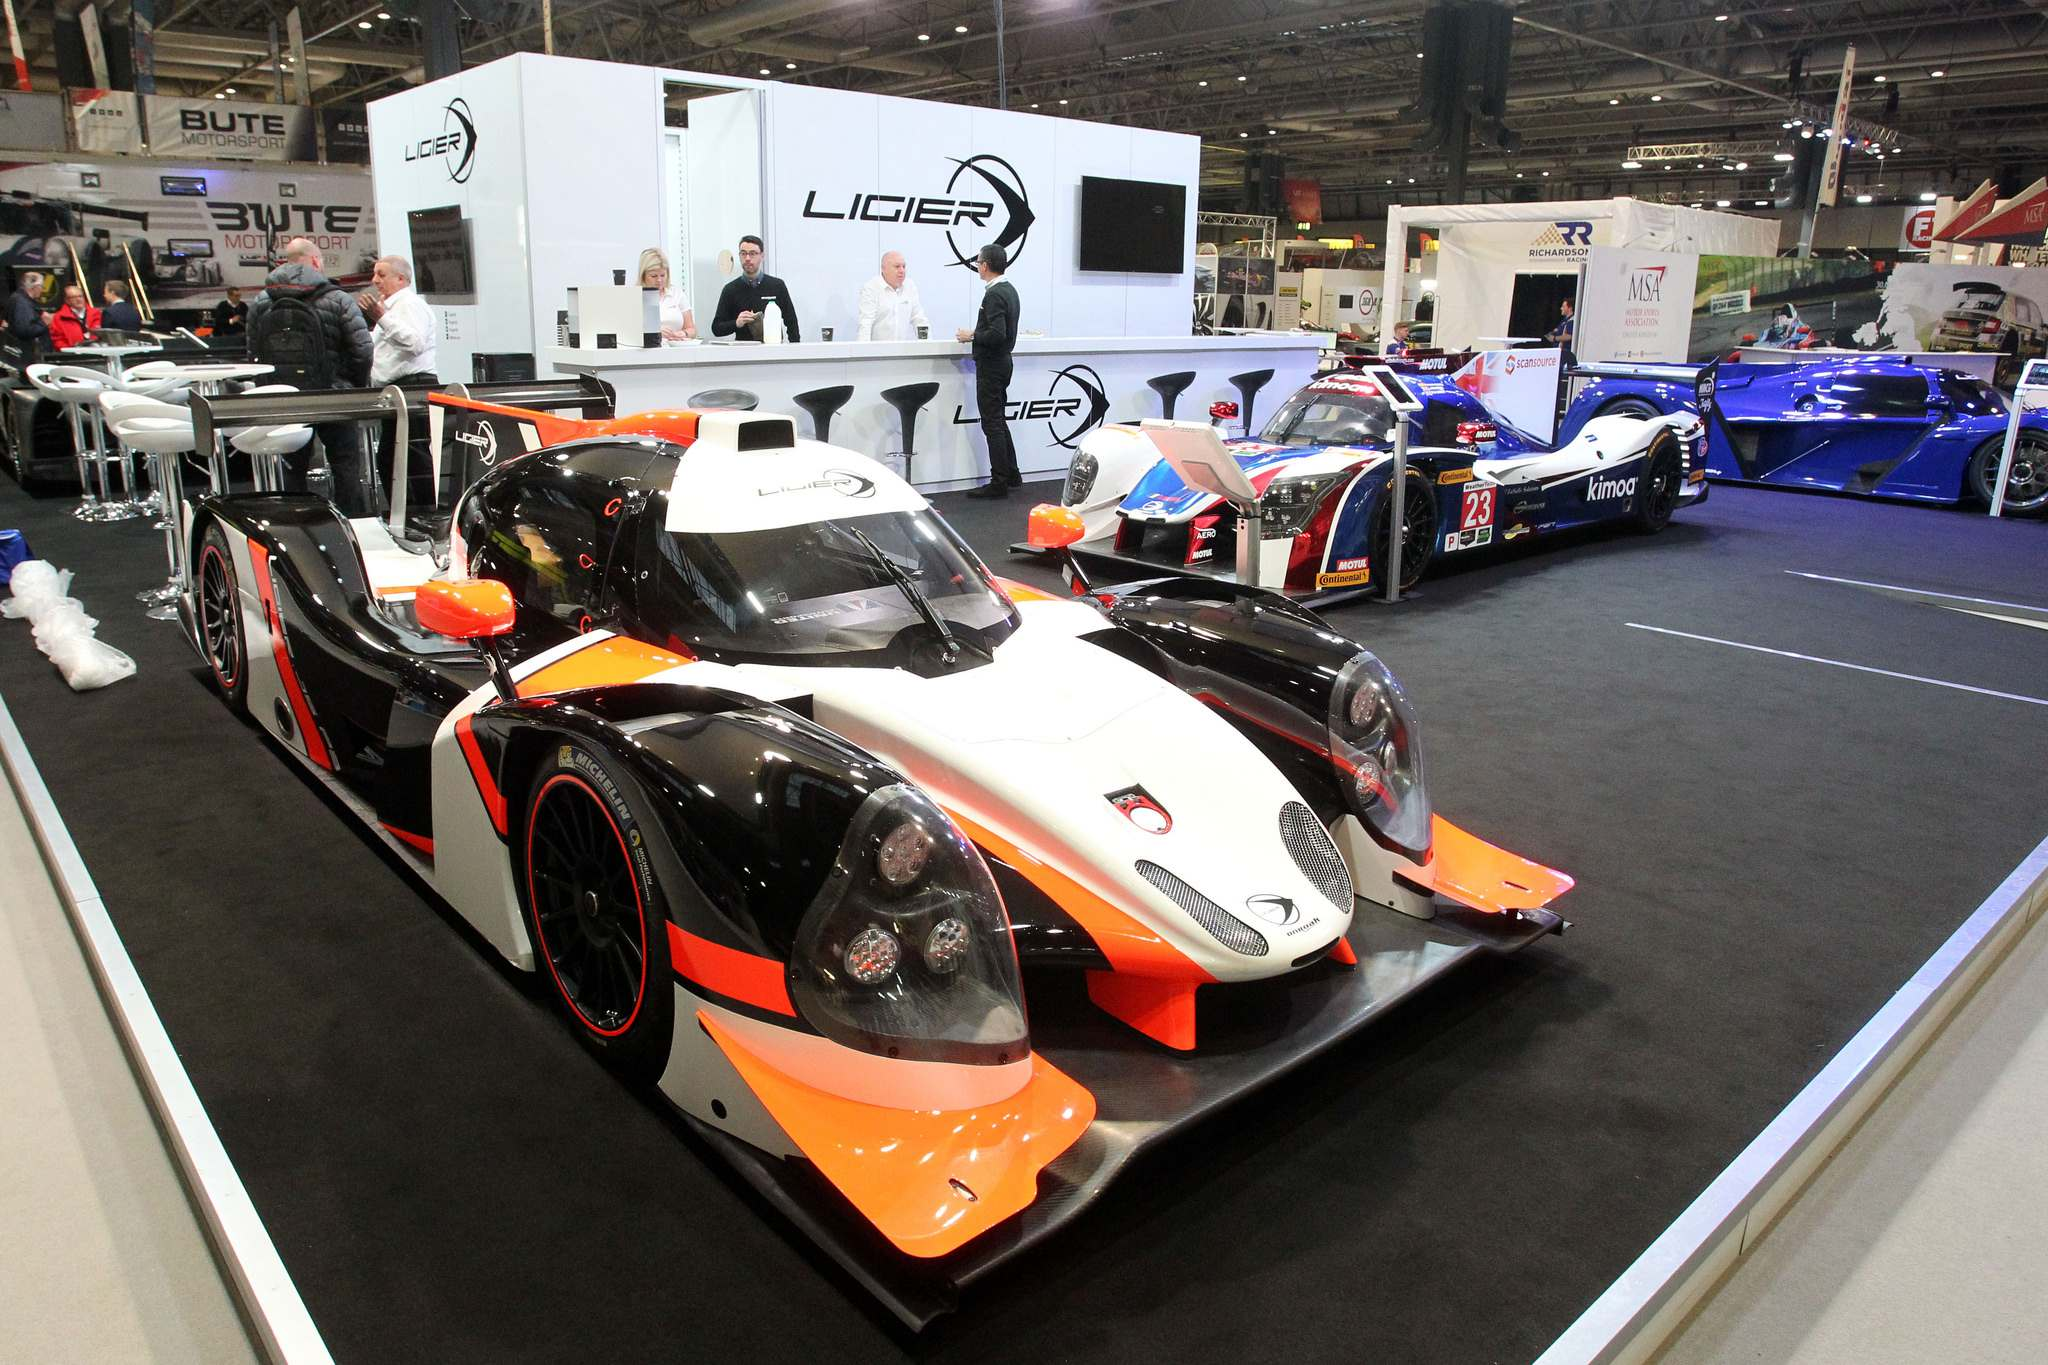 ligier 201812 Ligier at Autosport International Show 2018